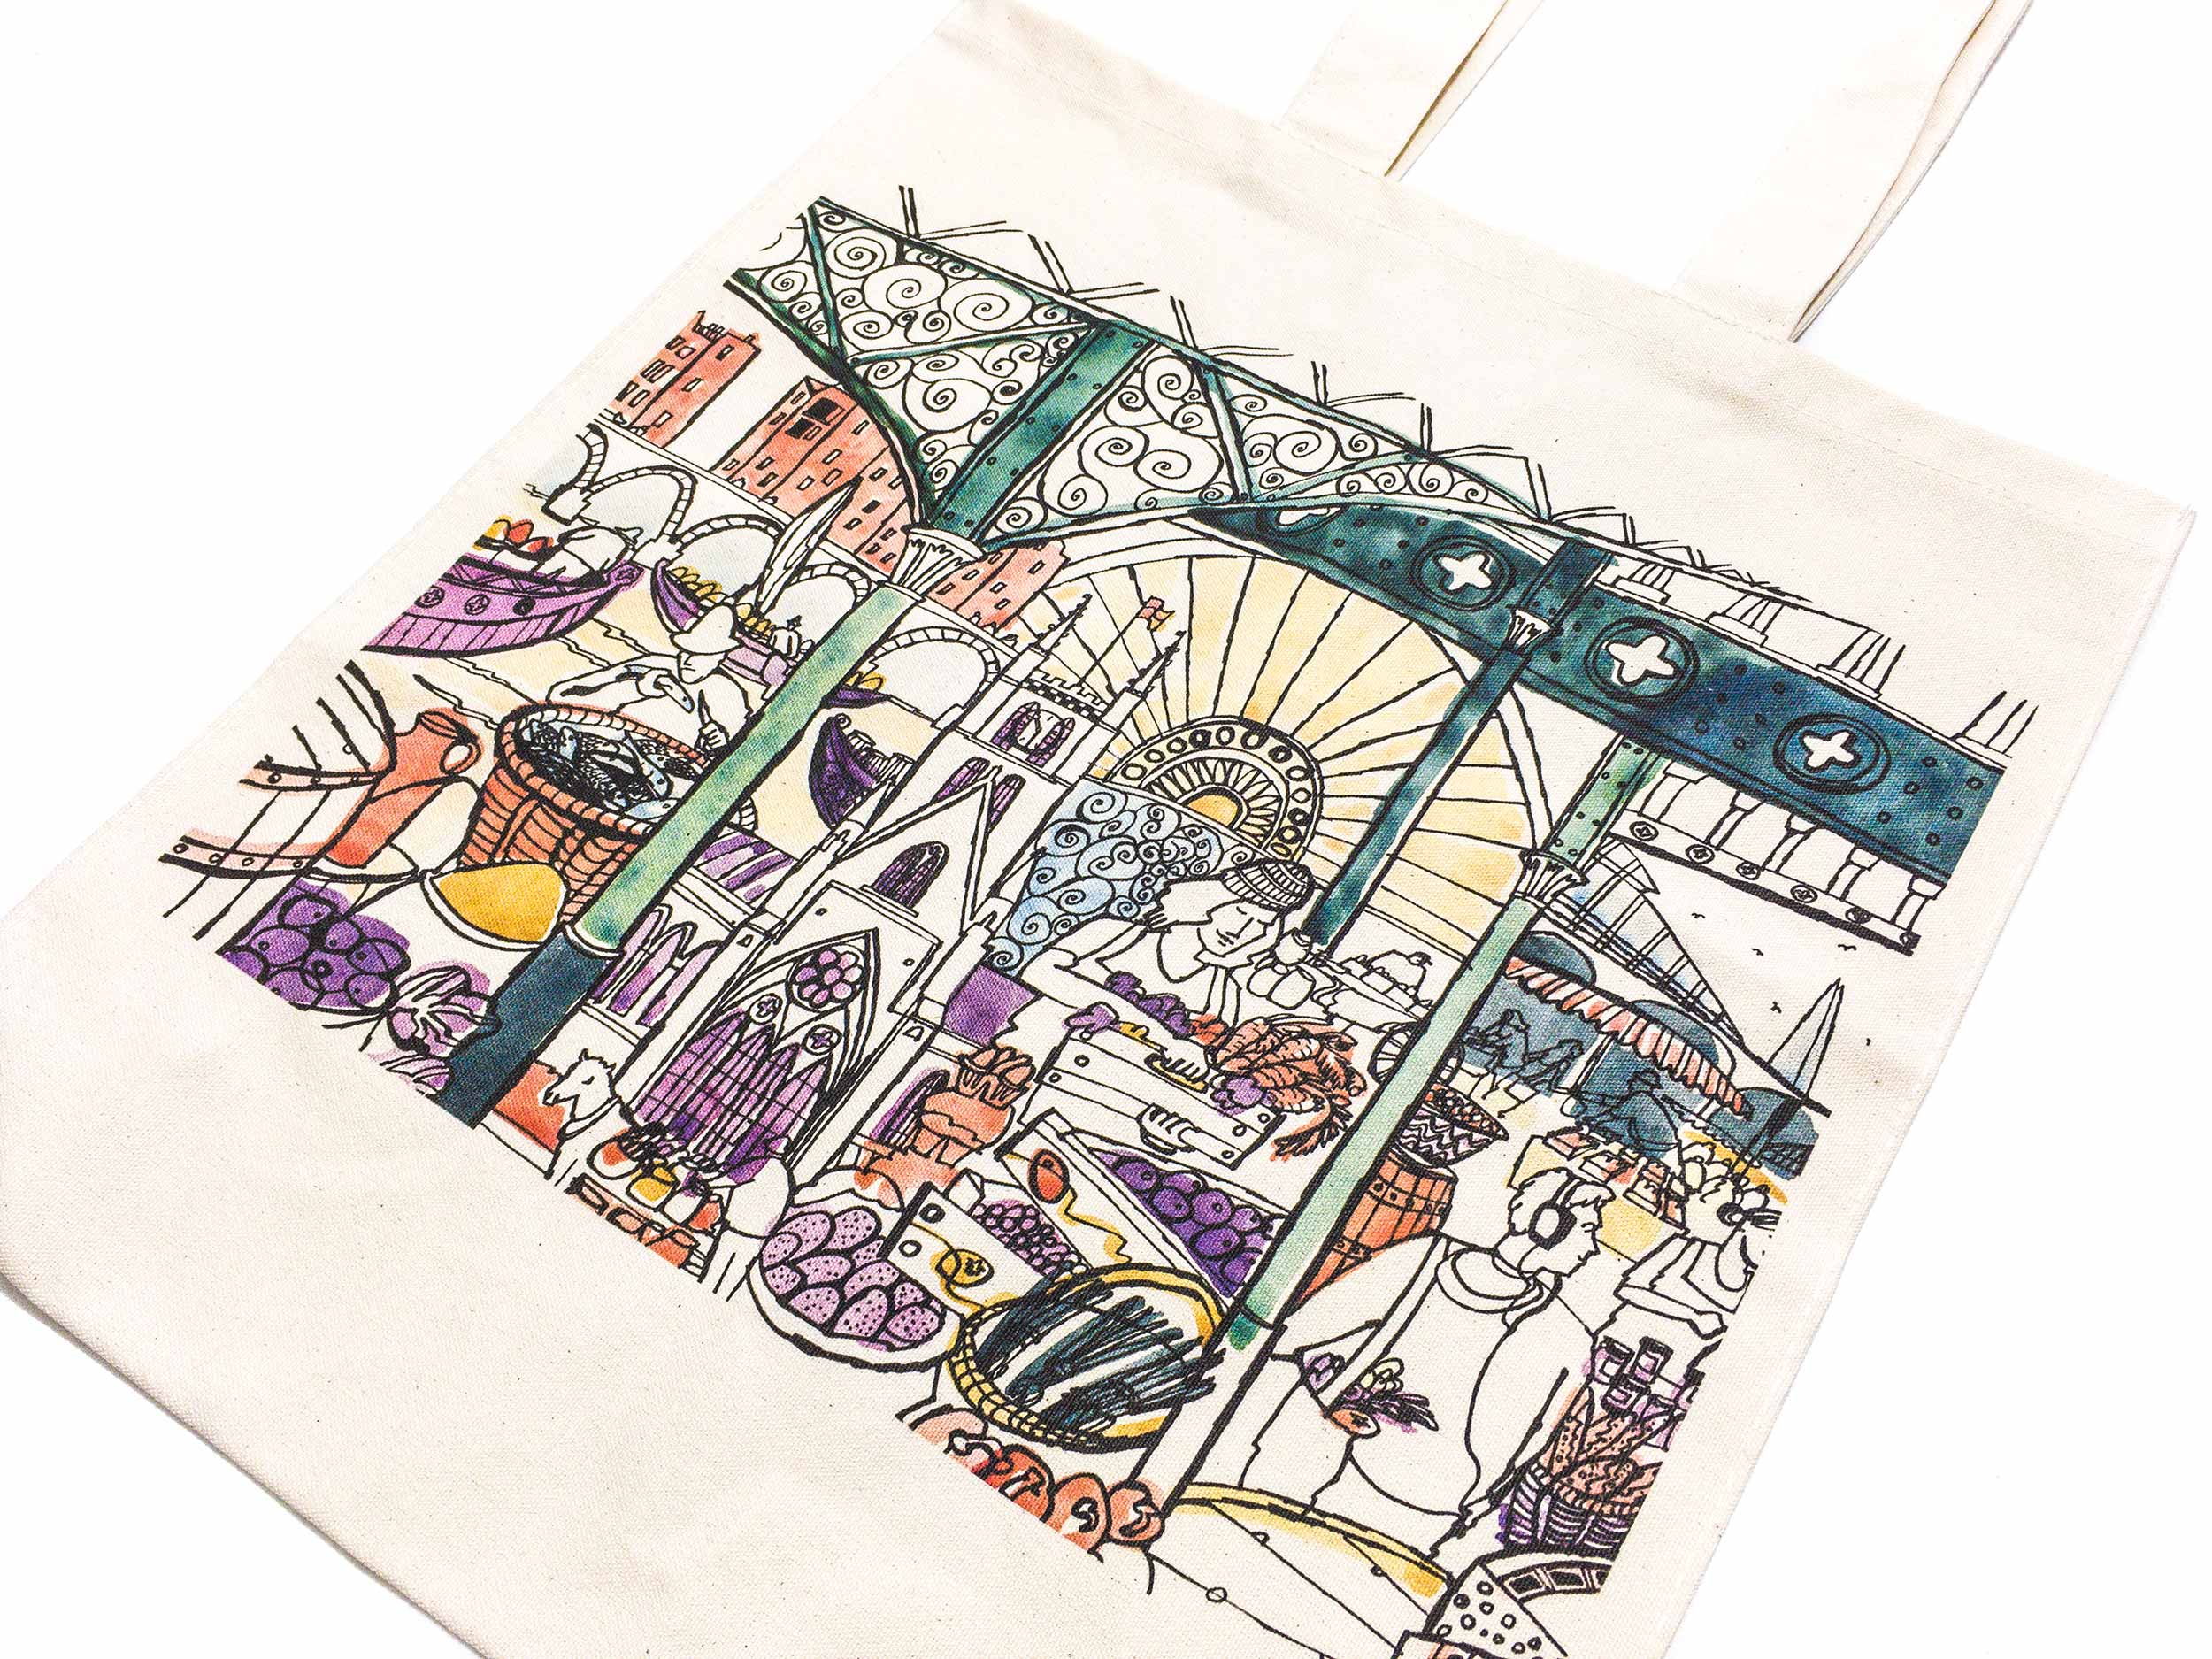 Borough Market at 1000 canvas bag by James Oses, image 1